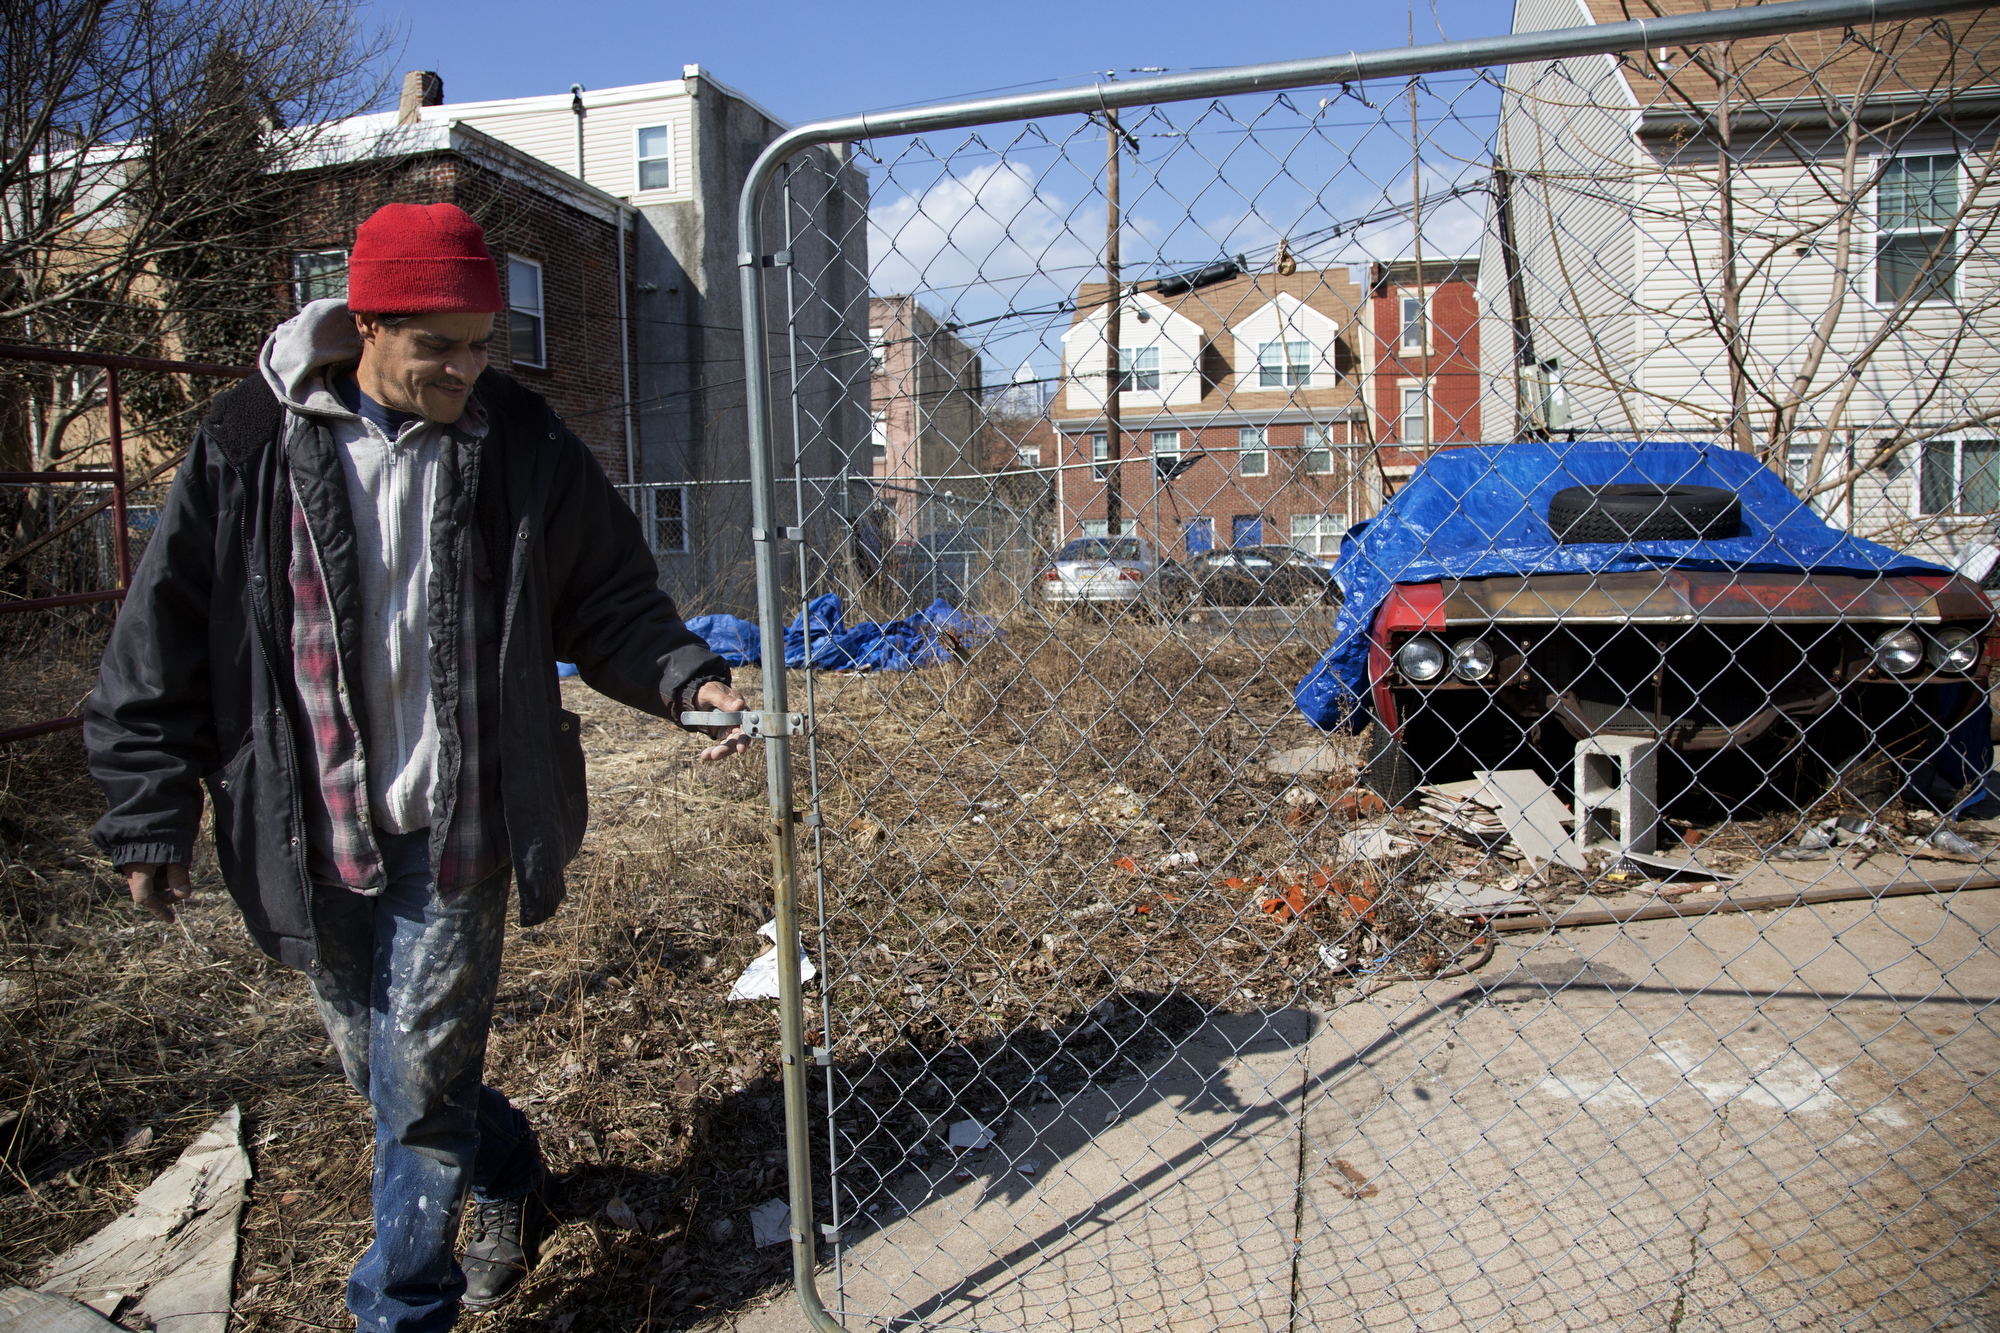 Mark Watts closes a gate to the yard of a home he is renovating on the 1100 block of South 15th Street in Philadelphia, March 20, 2014.